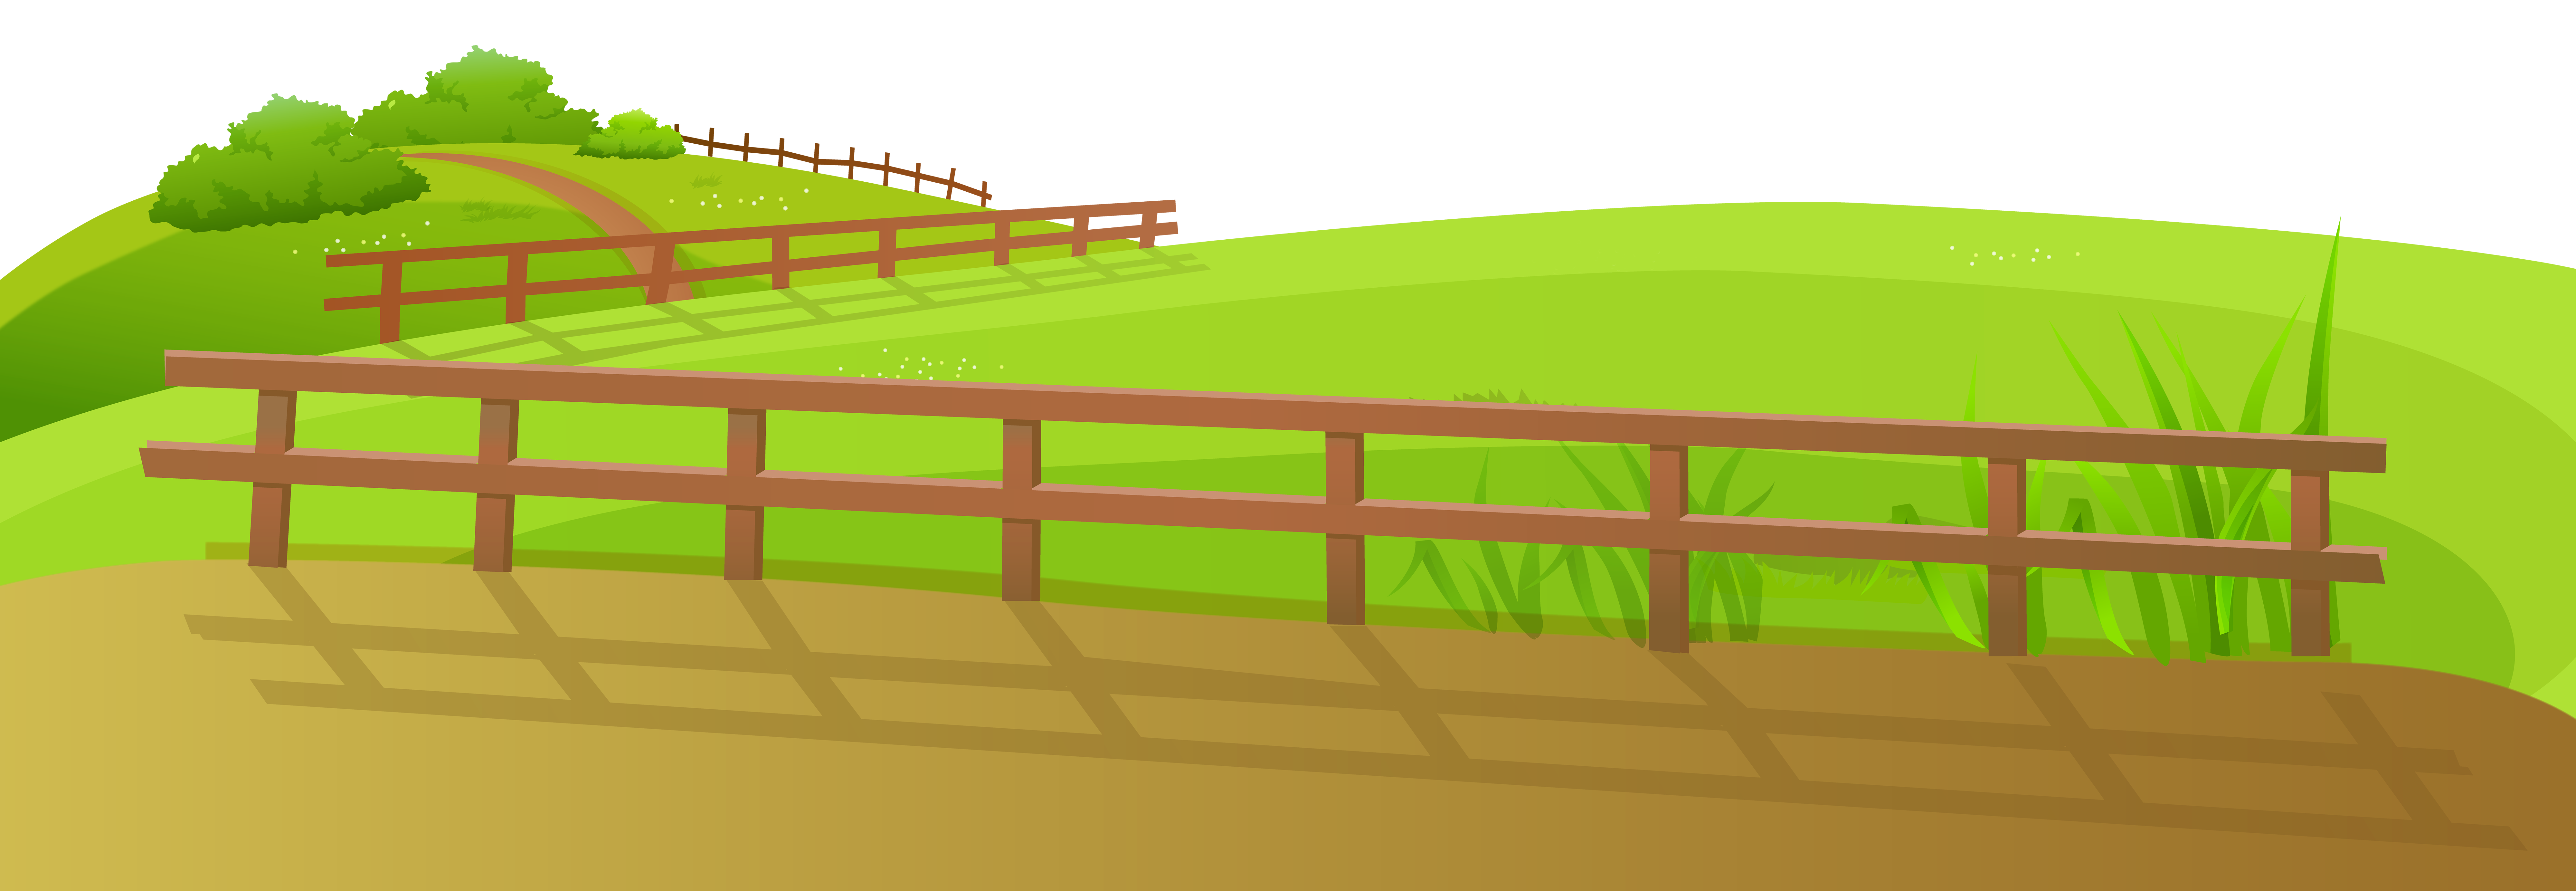 picture royalty free stock Farm background clipart. Grass ground with fence